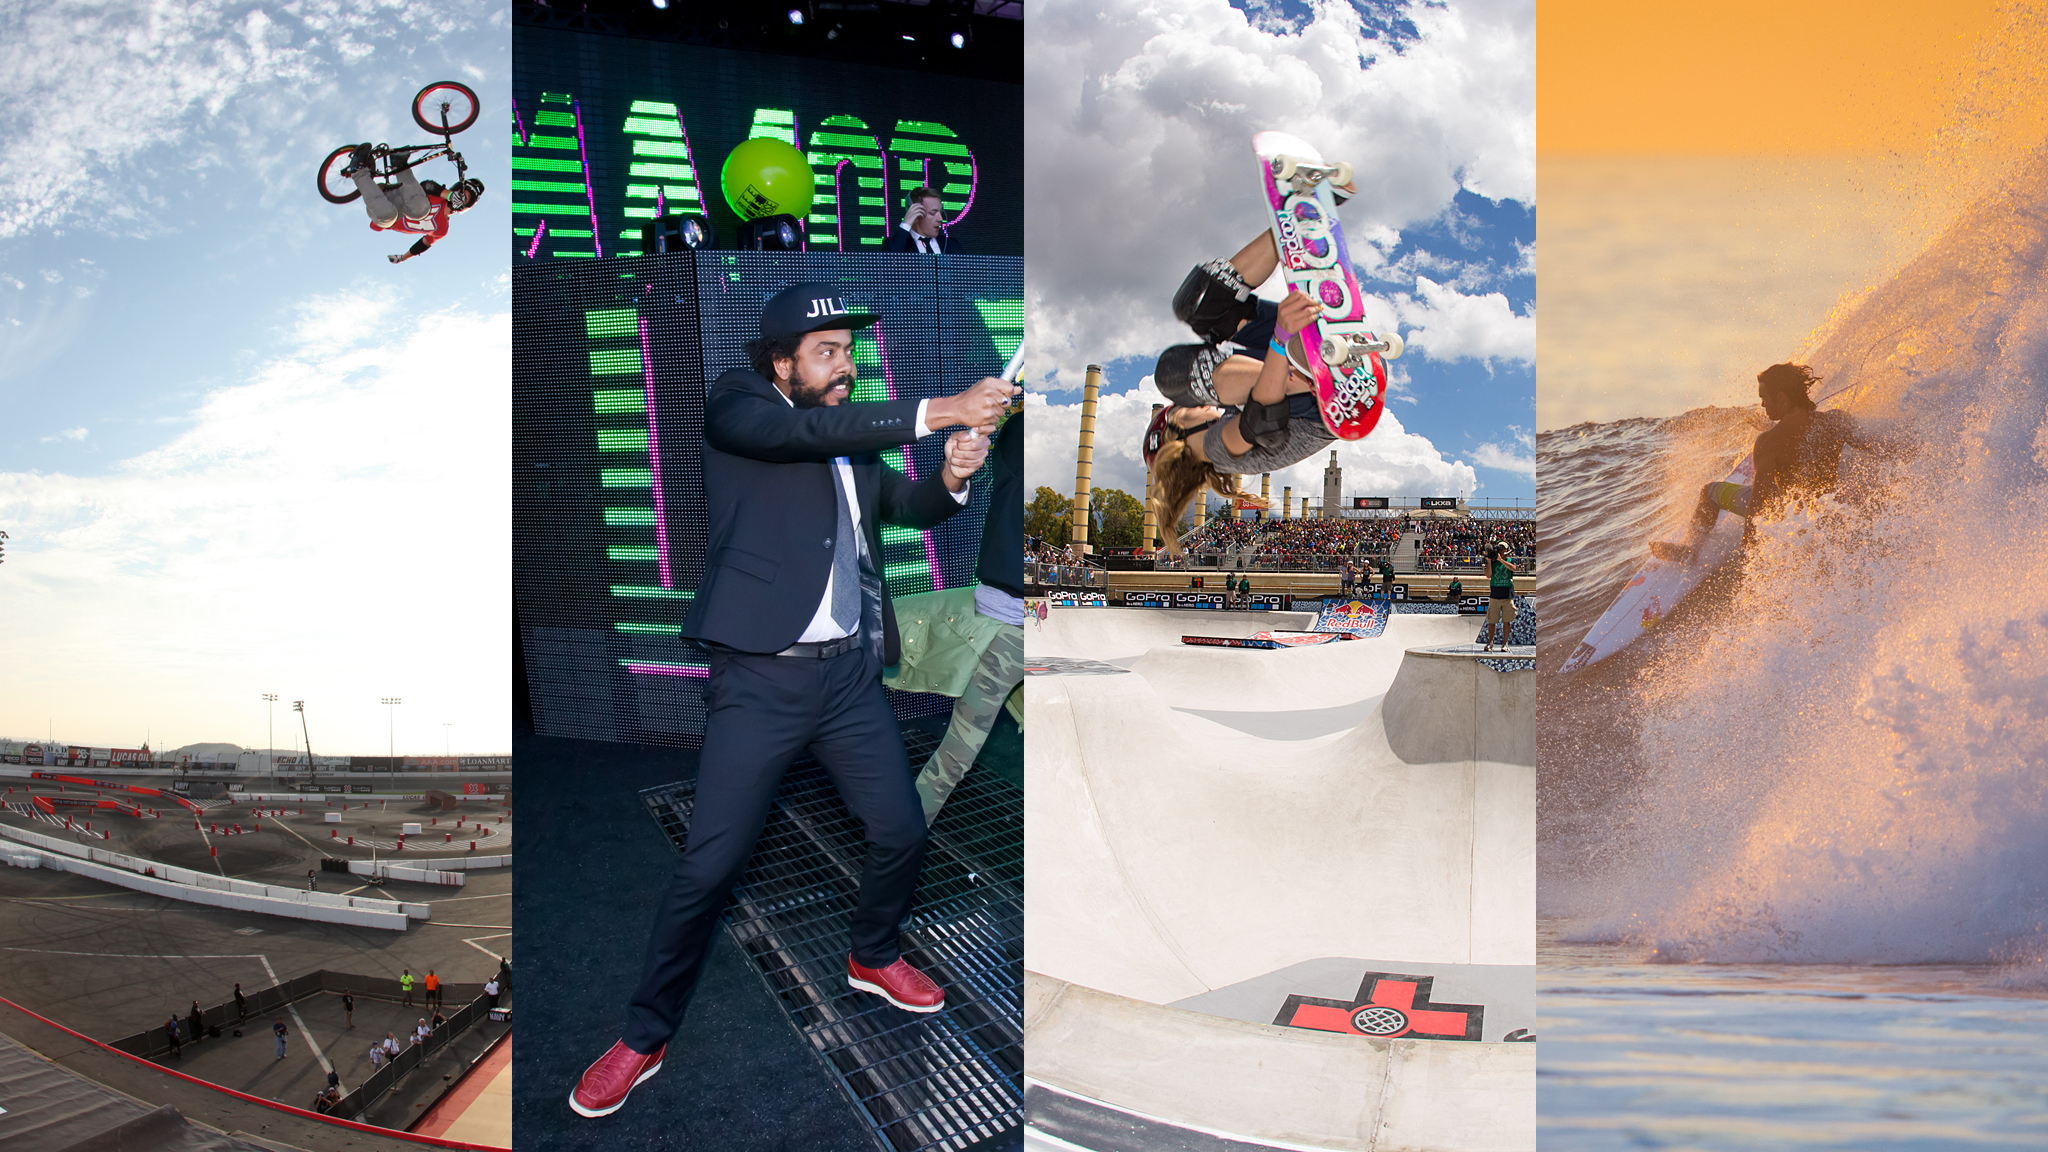 Seven months, six stops, five countries and a whole lot of new hardware to clear customs: 2013 was a whirlwind of a year for the X Games. Many athletes competed in their first event, and many won their first medal. But that's the thing about X Games: New stars are born and new records are set every day. Here's a look back at 20 of the most memorable global X Games firsts from 2013.